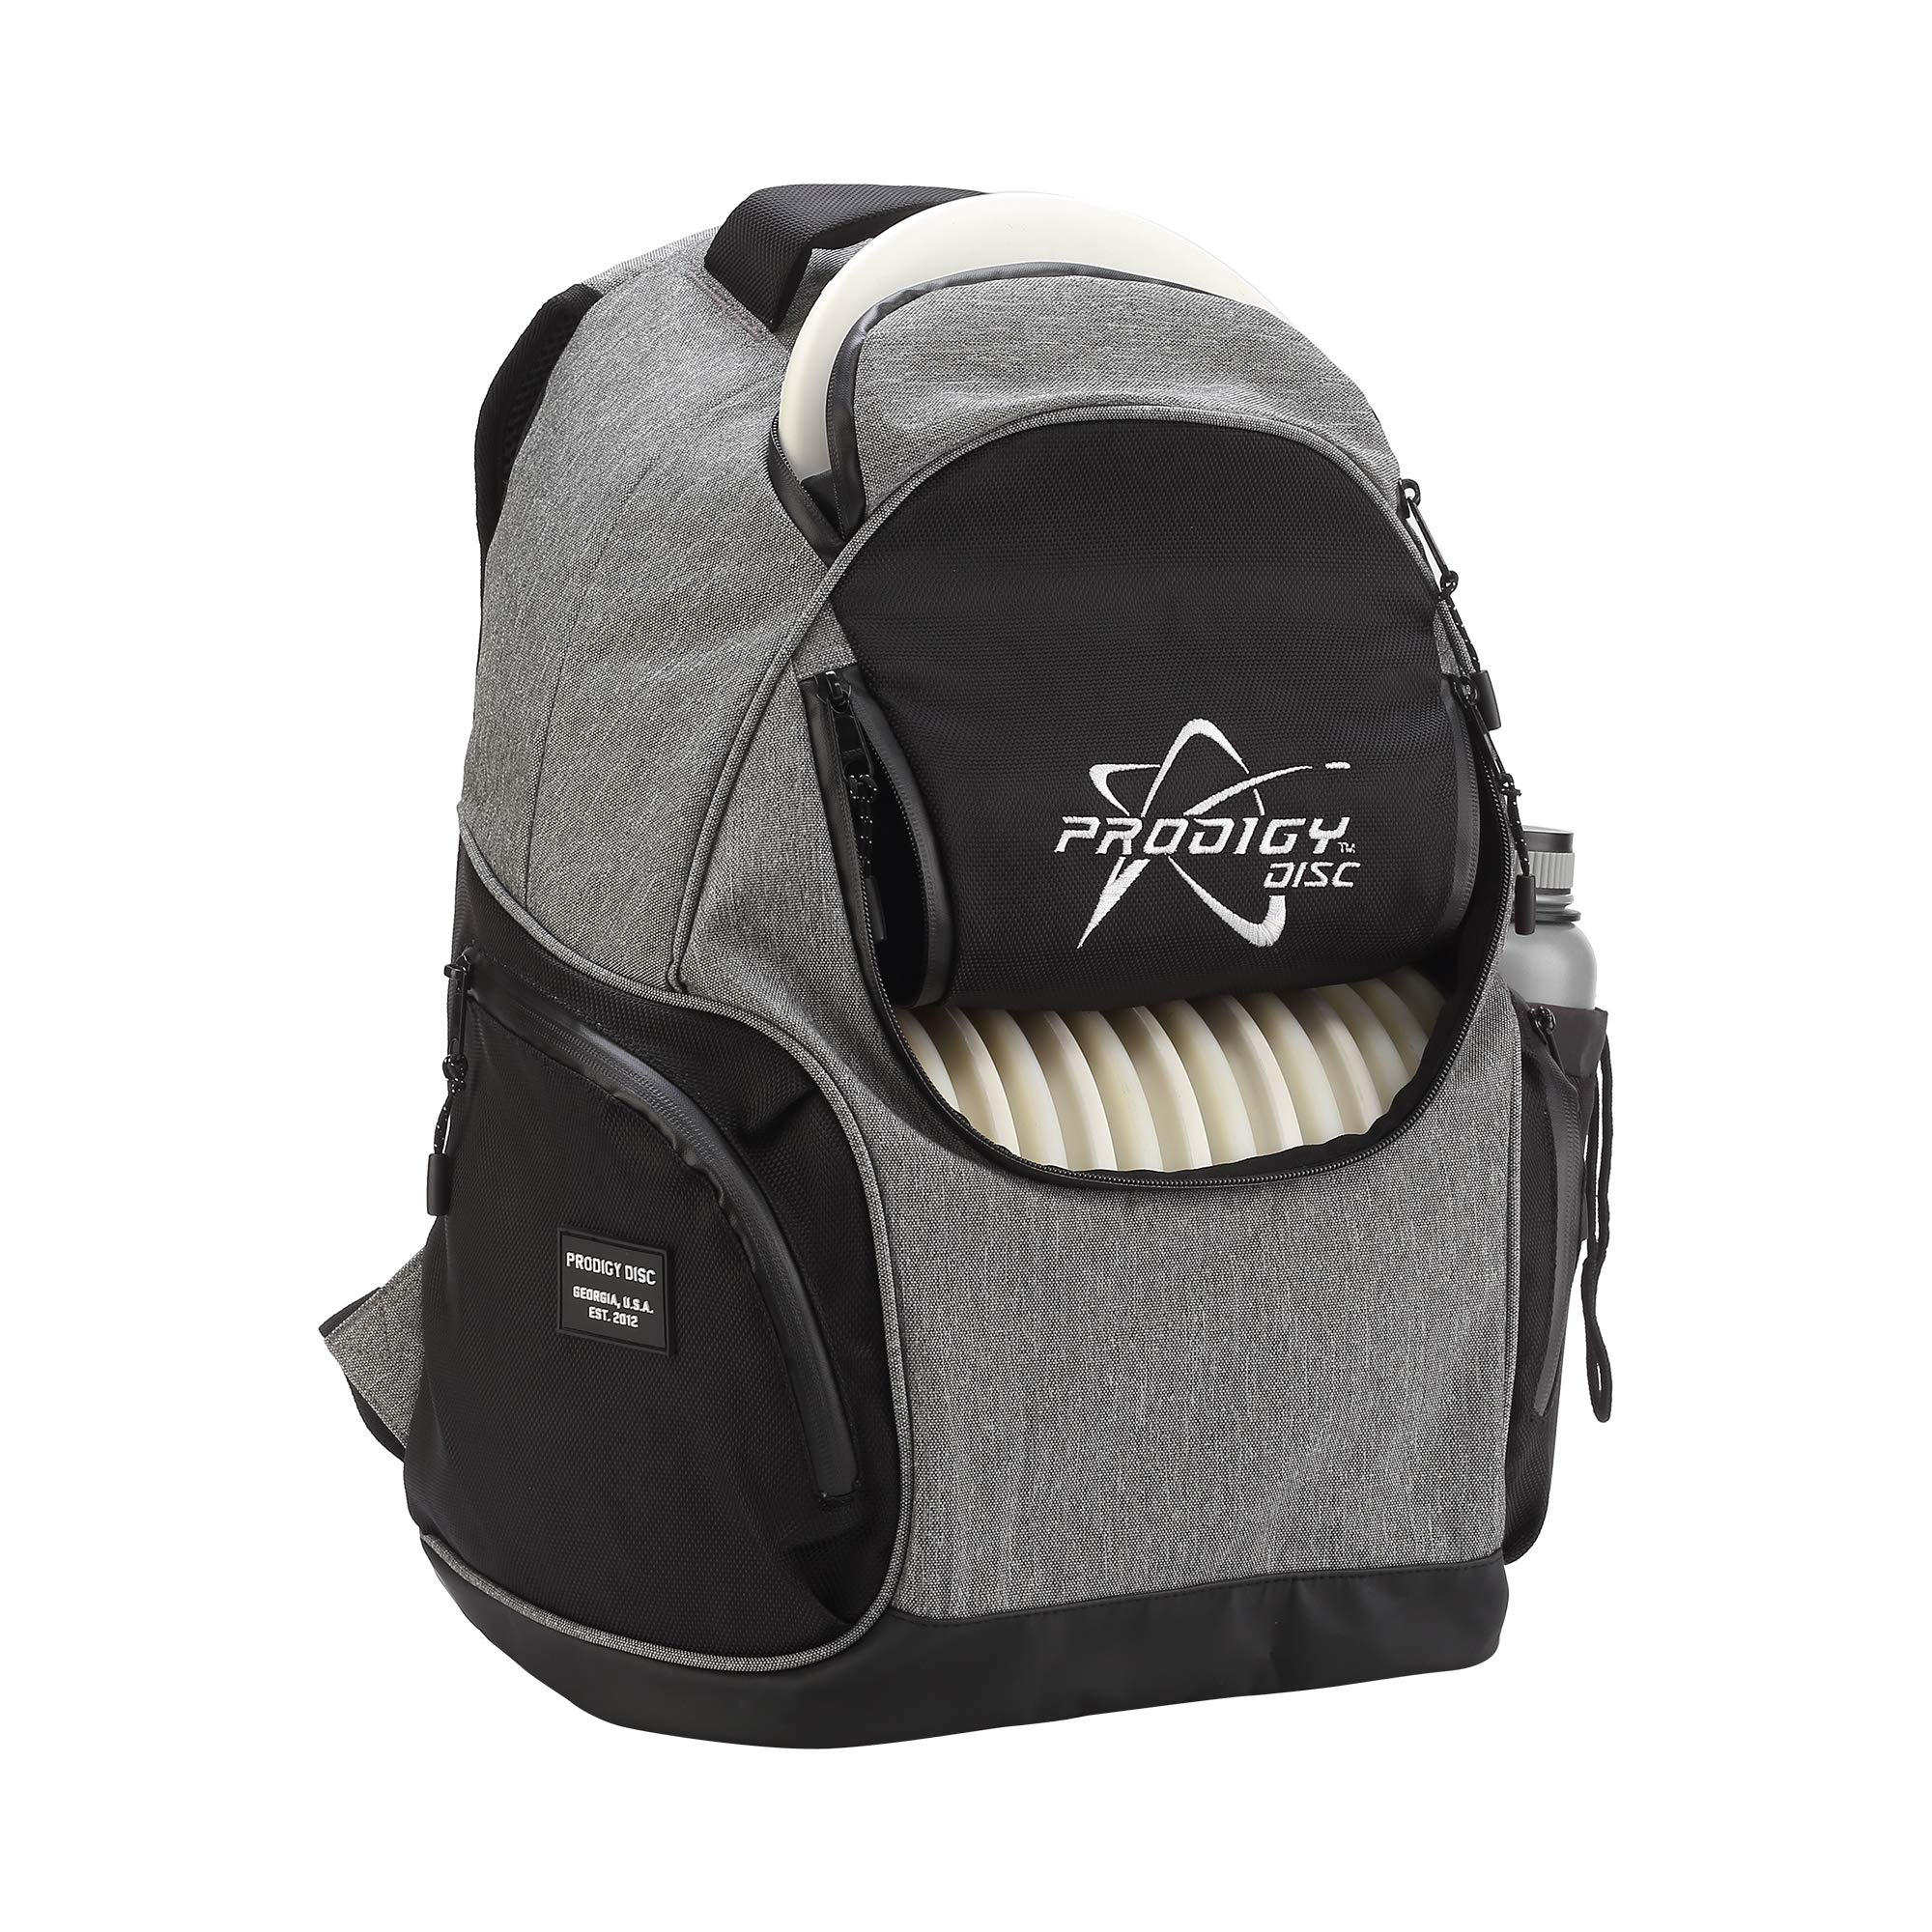 Prodigy Disc BP-3 V2 Disc Golf Backpack - Fits 17 Discs - Beginner Friendly, Affordable (Heather Gray/Black) by Prodigy Disc